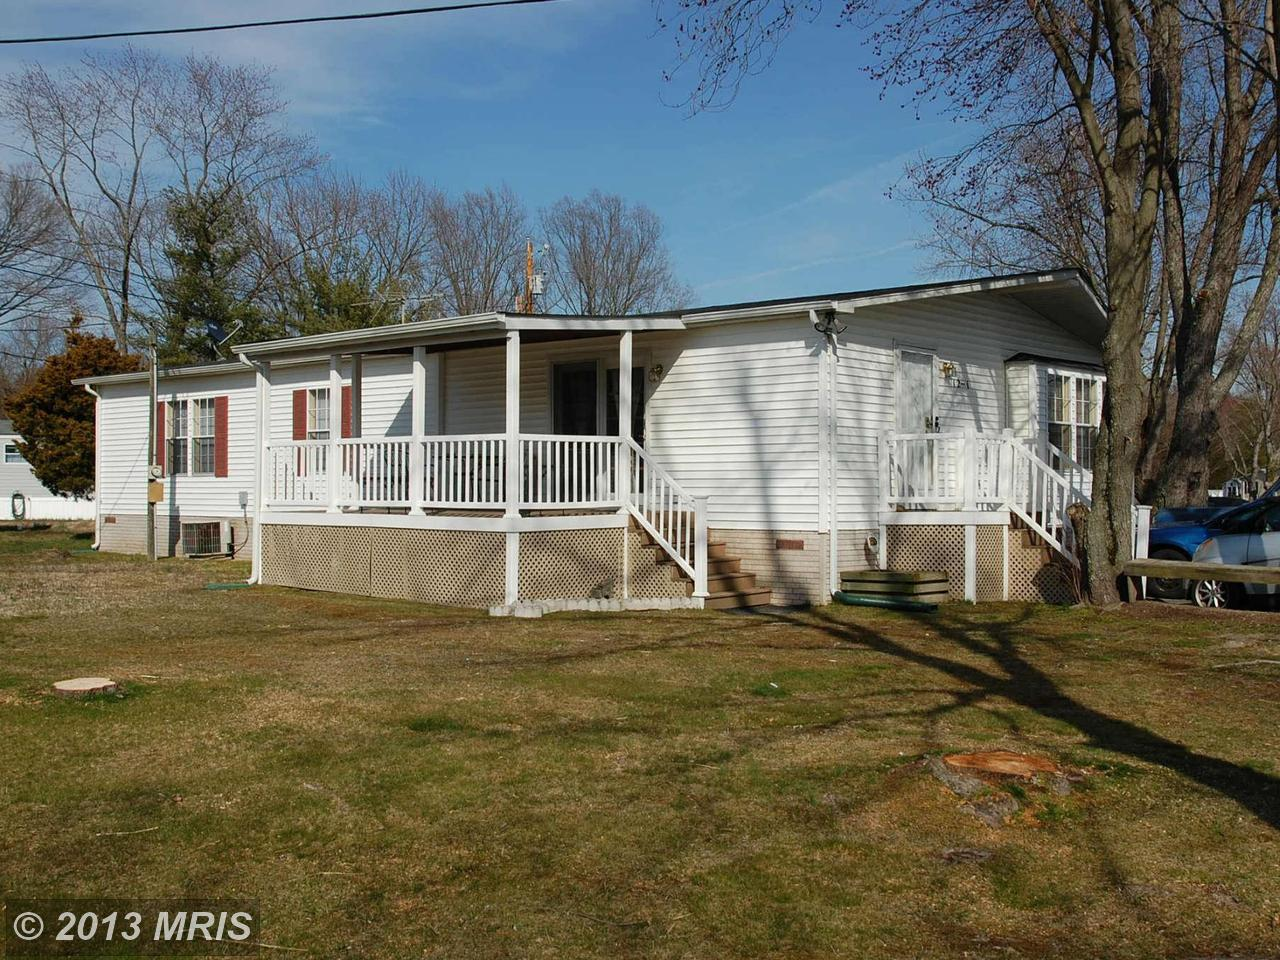 Mobile homes for sale in brandywine md brandywine mls brandywine real estate - Md house mobili ...